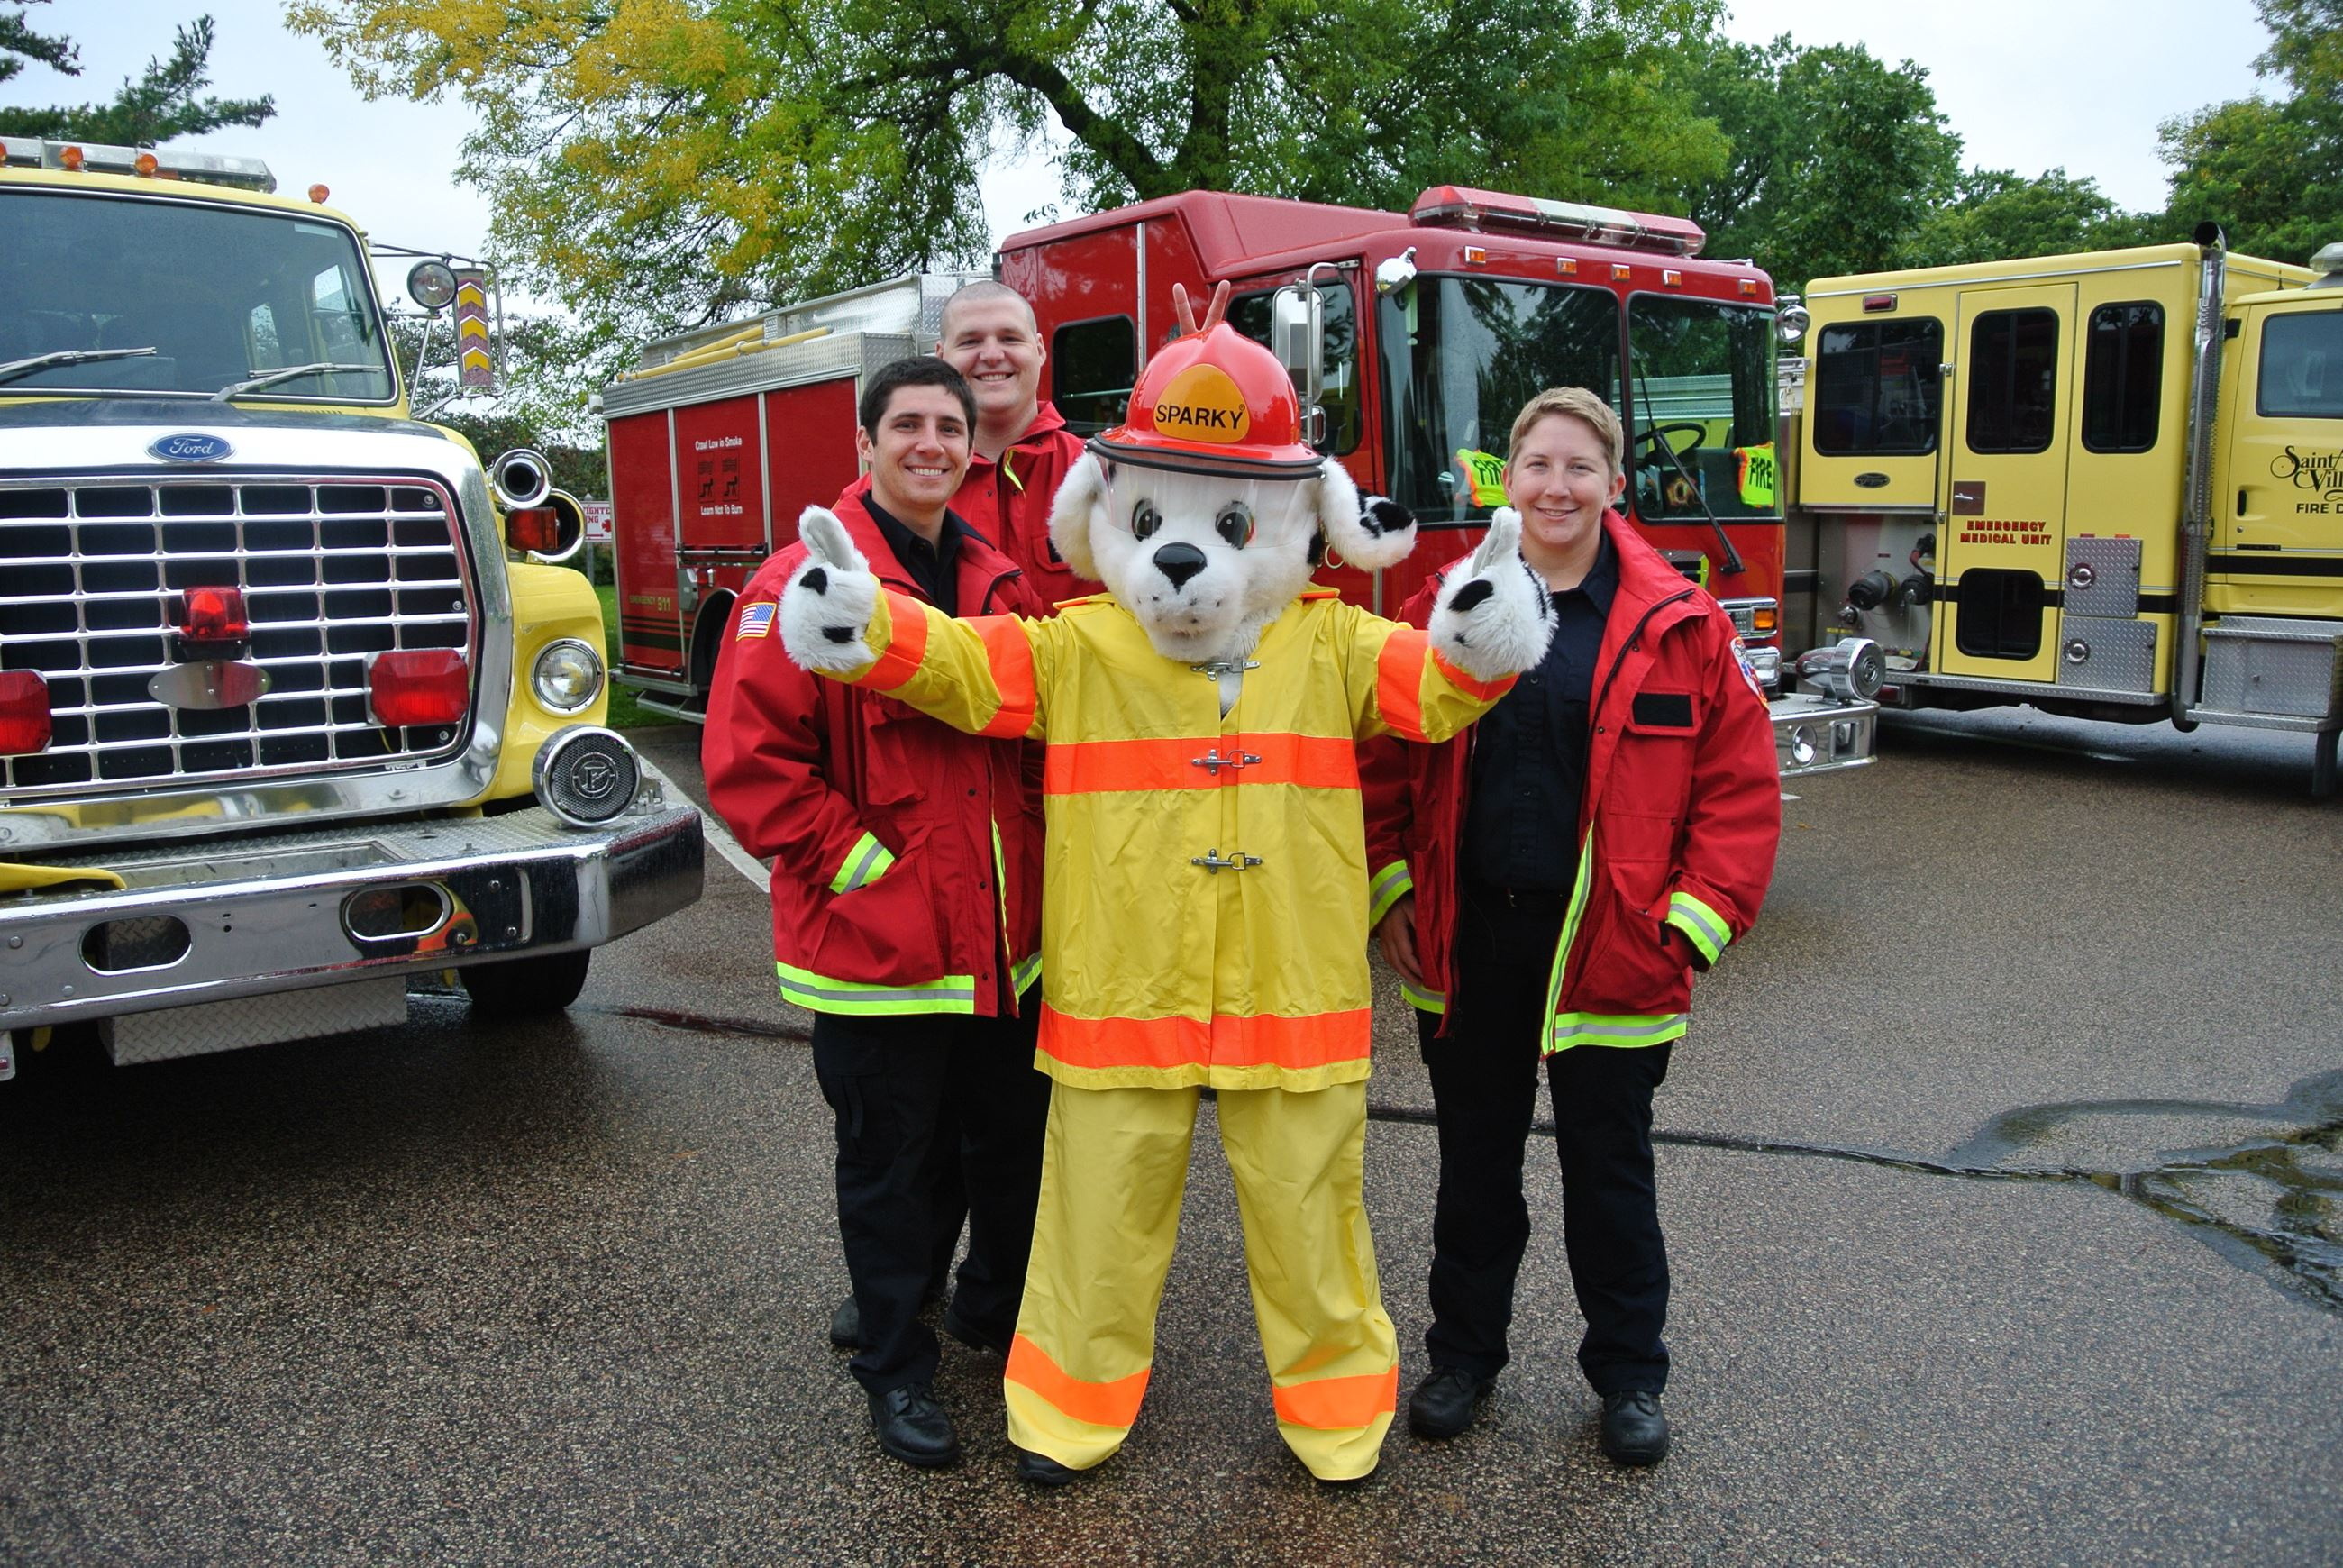 Sparky with firefighters